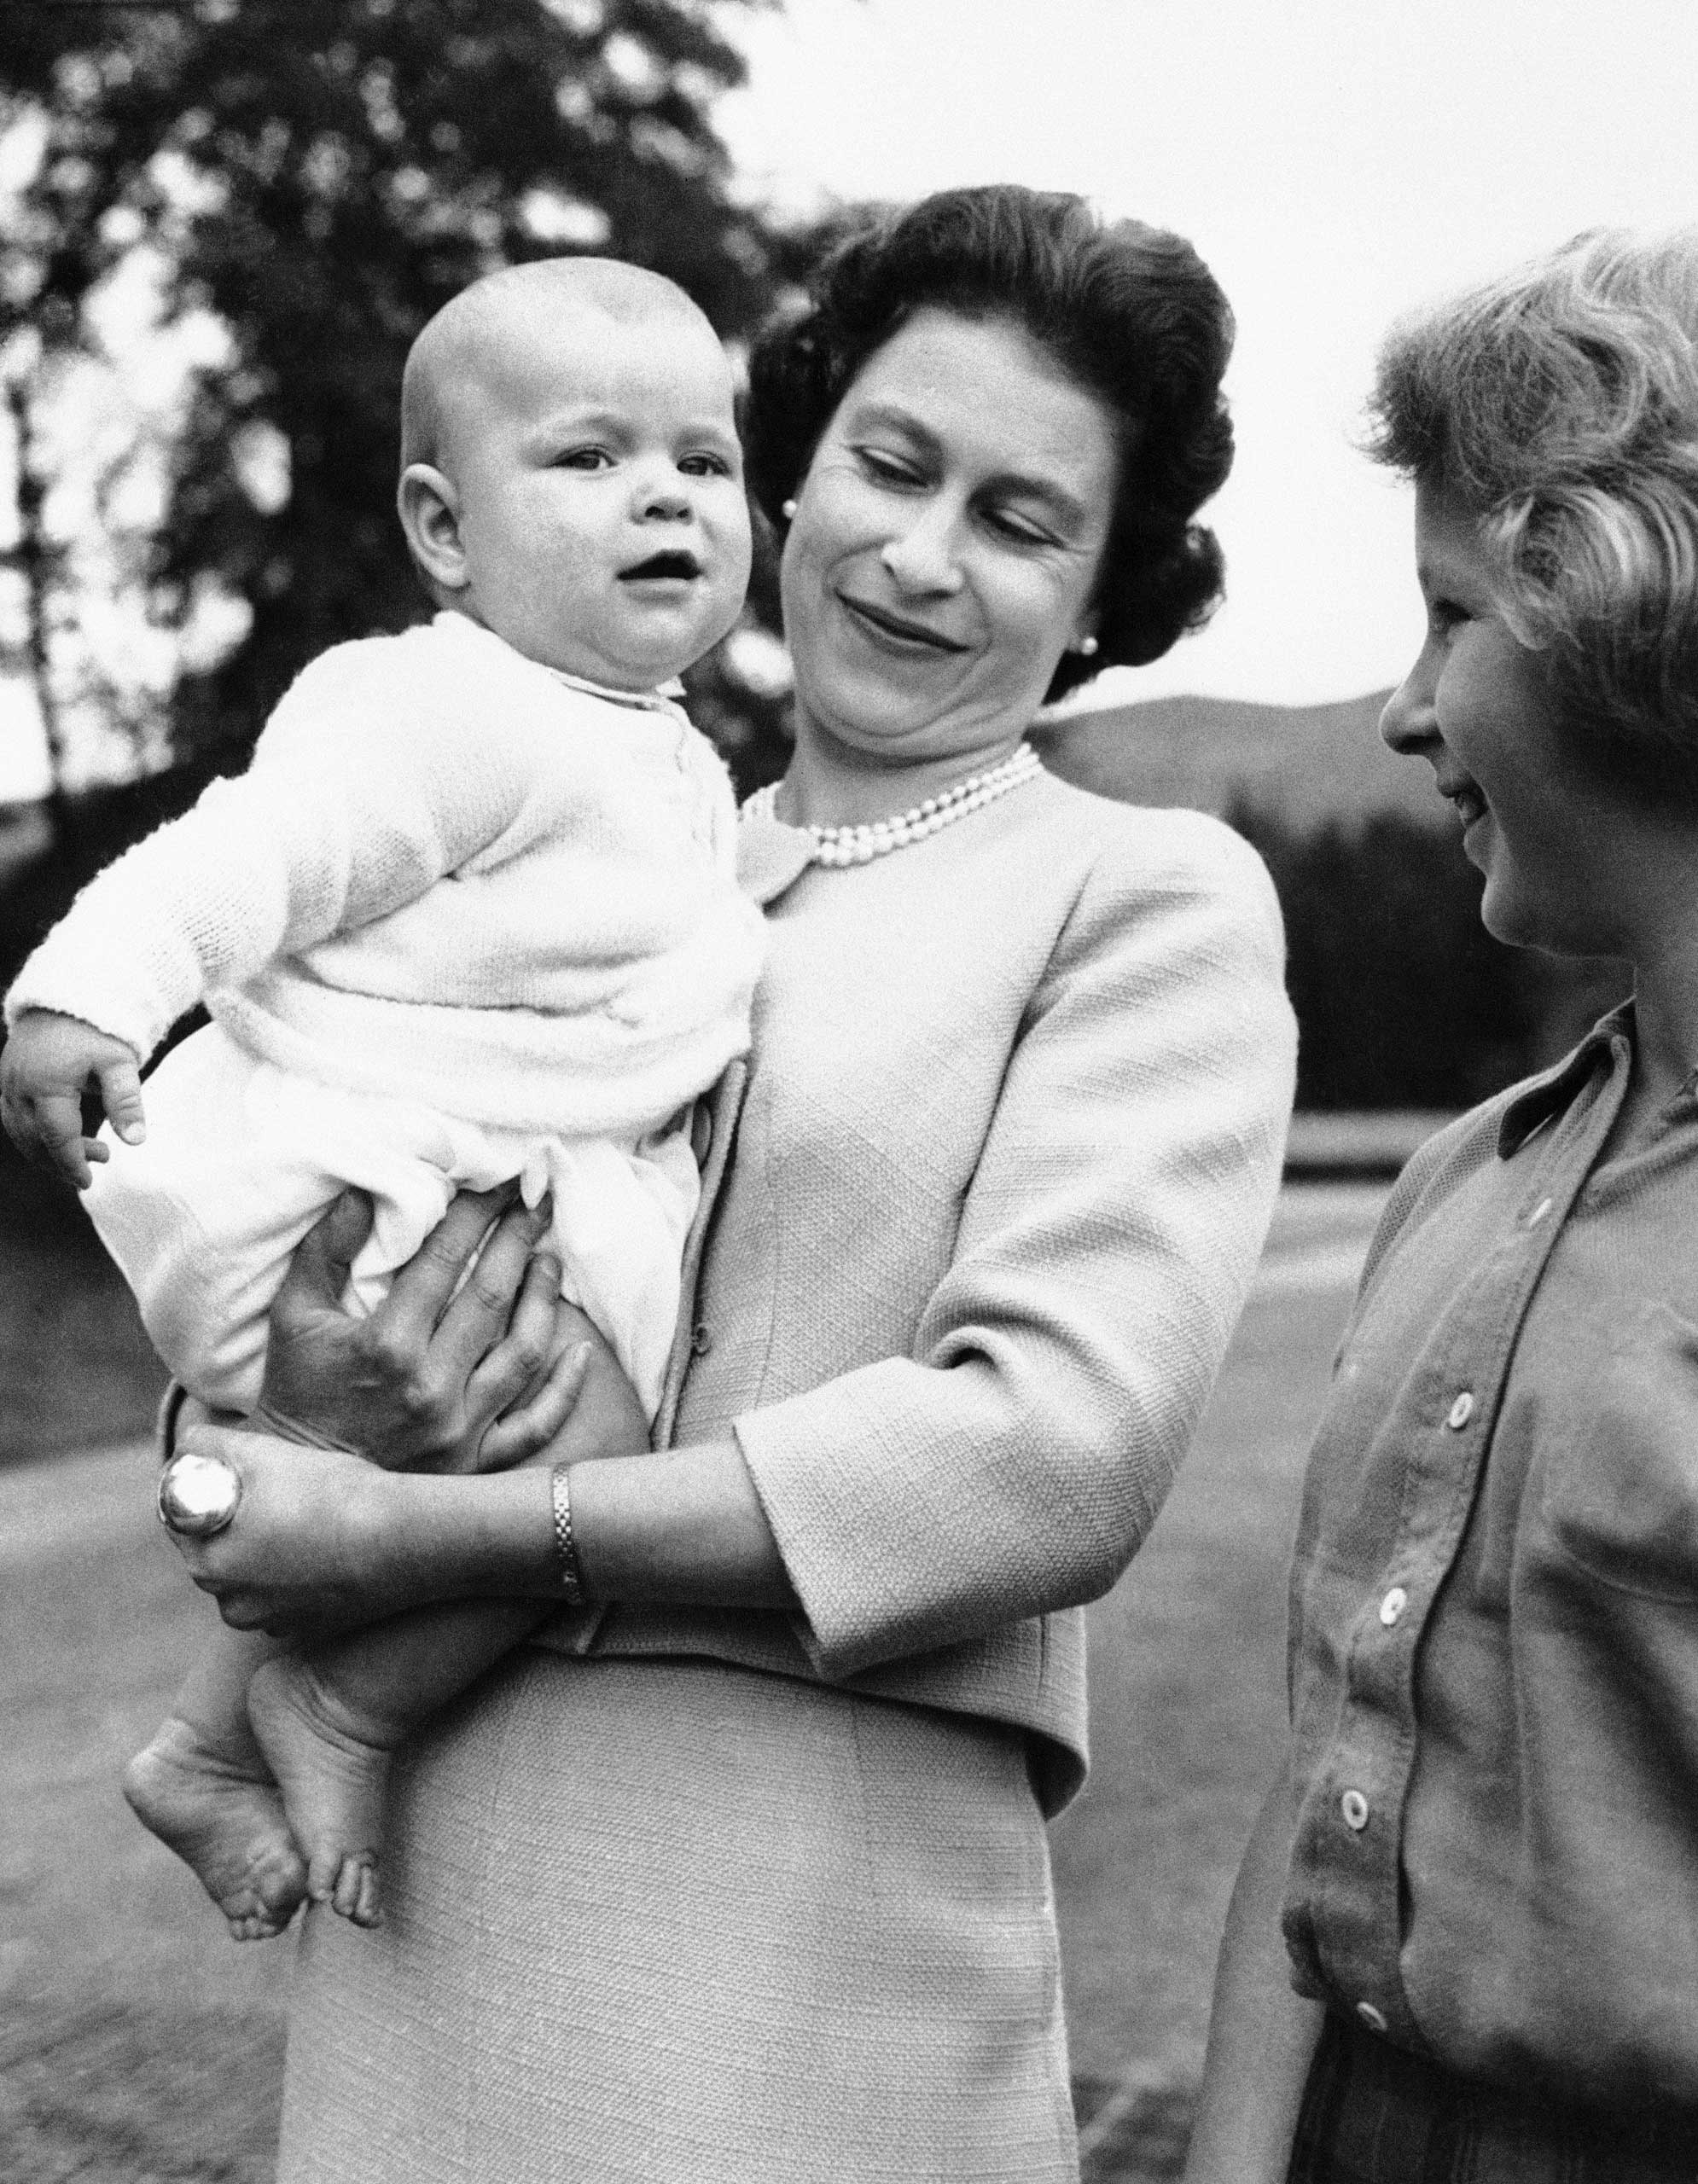 She already had an heir. Here's Queen Elizabeth with the spare: a chubby, 6-month-old Prince Andrew, in the grounds of Balmoral Castle, Scotland in 1960.